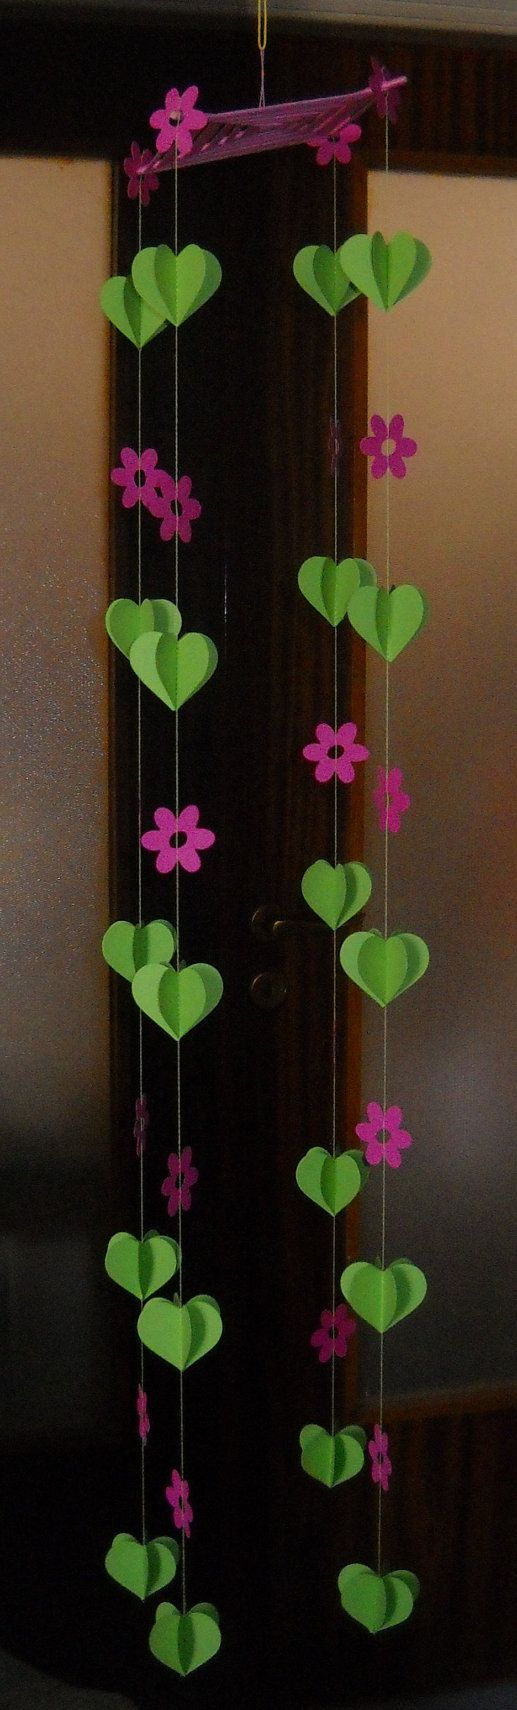 New - 3D Paper Mobile-Garland - Cyclamen - Birthday Party Garland, Baby shower garland, Nursery garland, Colorful garland, Kids garland